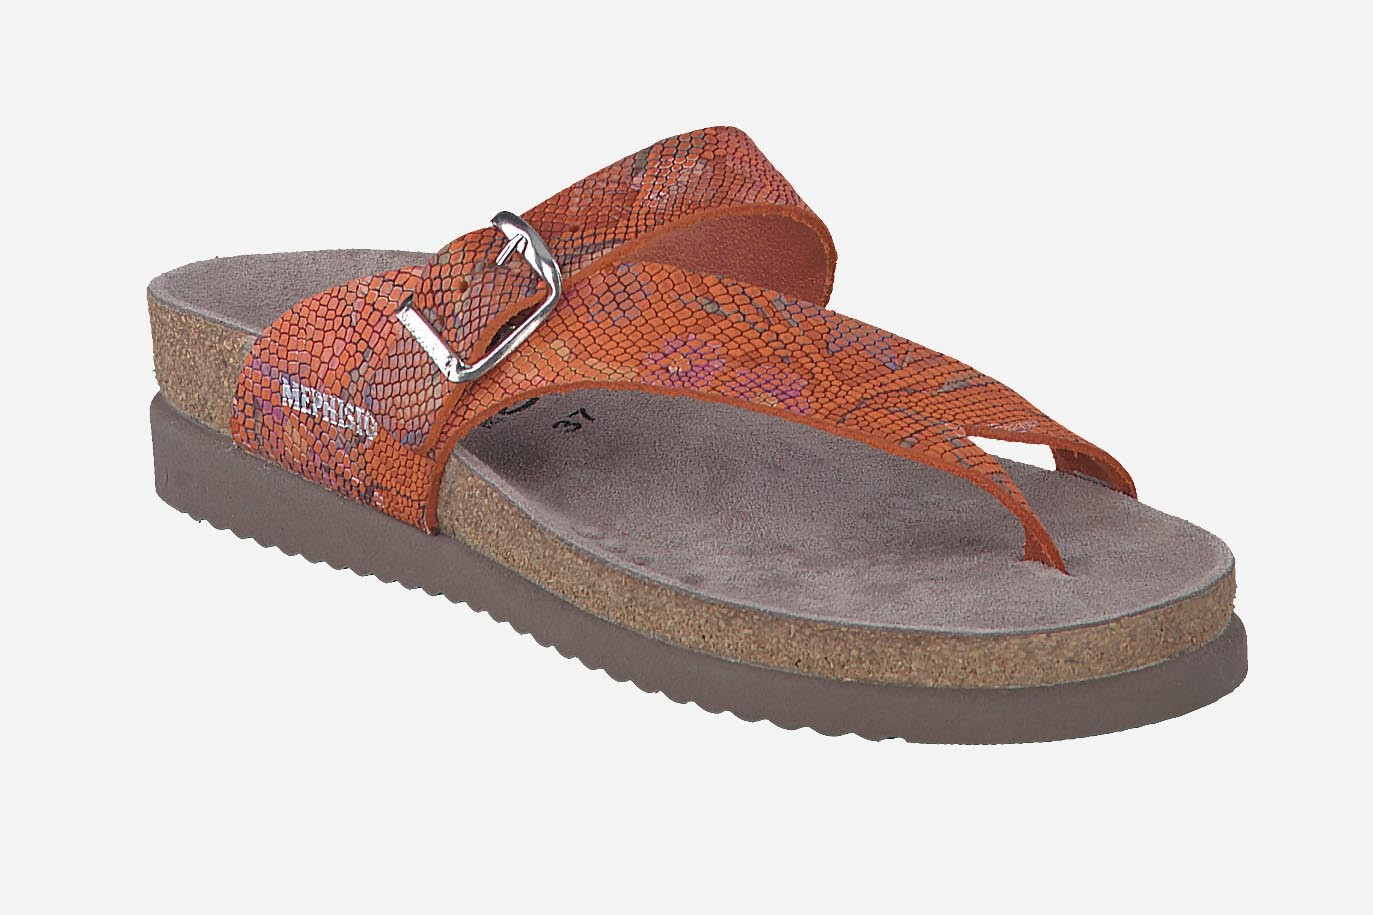 Helen Sun Sandal Mephisto Women S Cork Footbed Sandals Leather With